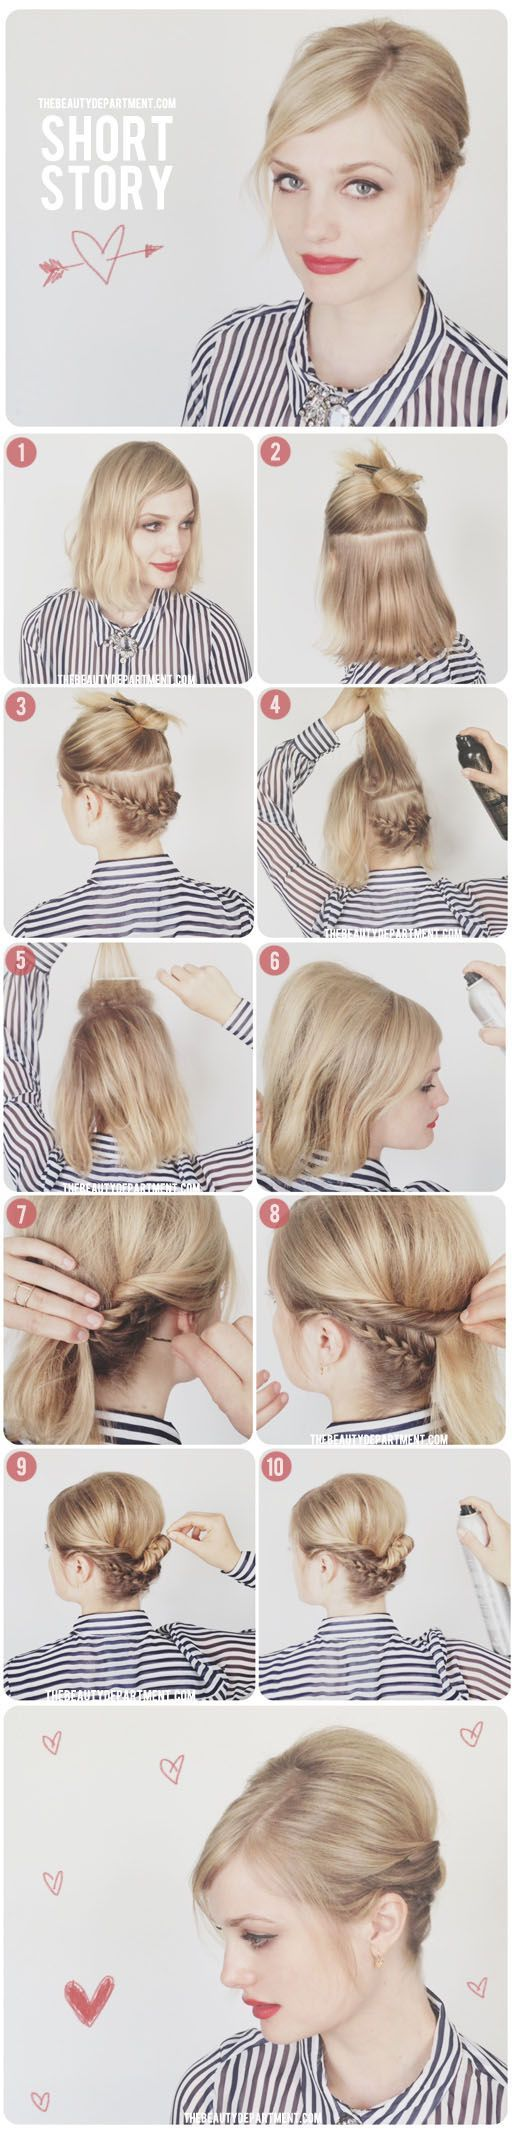 205 best Wedding Hair Styles images on Pinterest | Hairstyles, Make ...